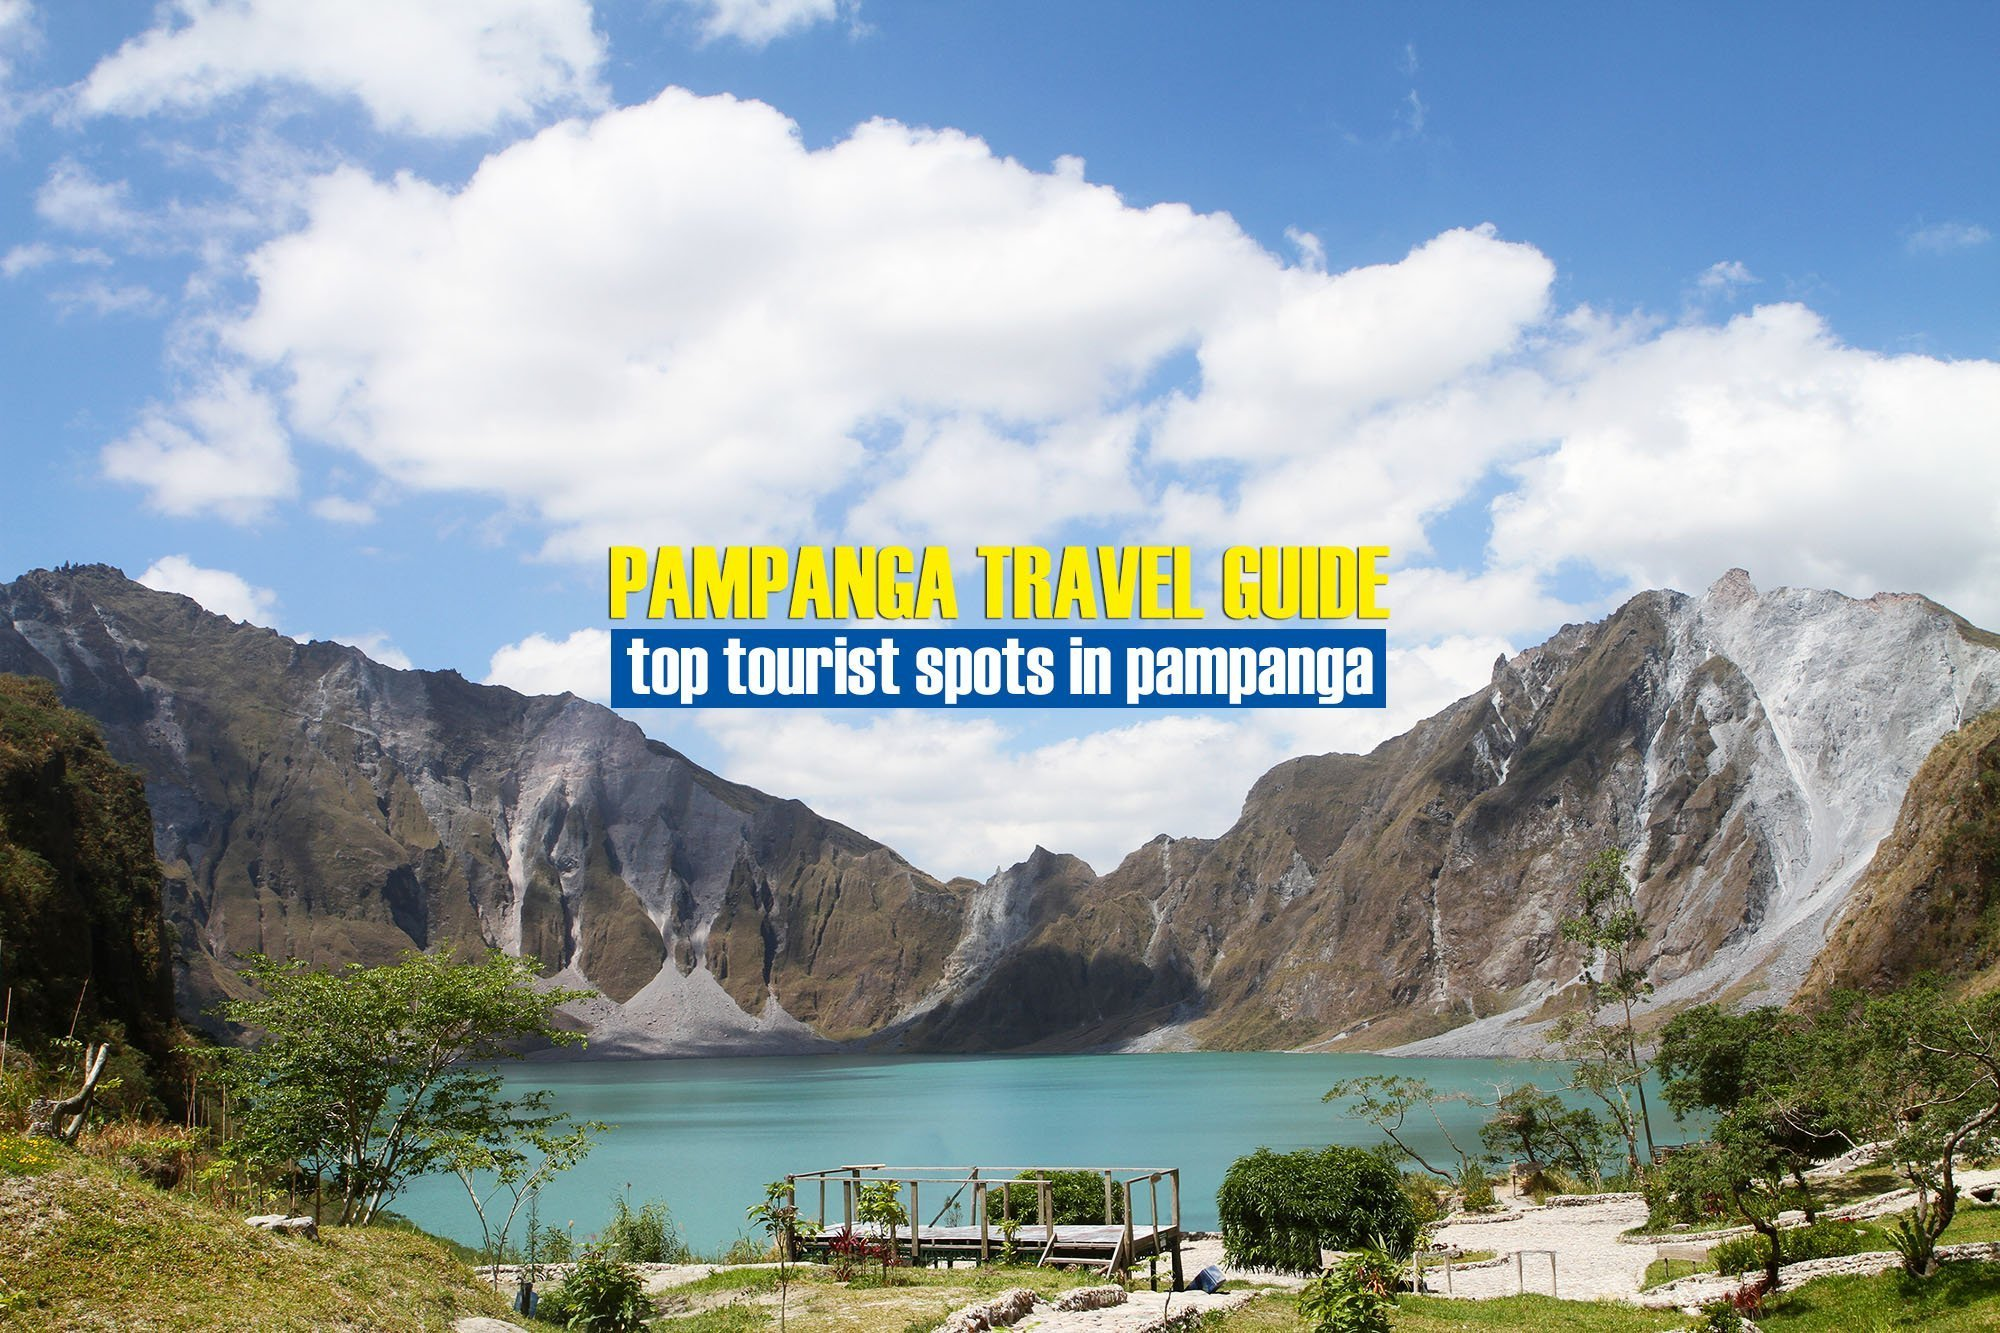 Top Tourist Spots in Pampanga [And How To Get There]